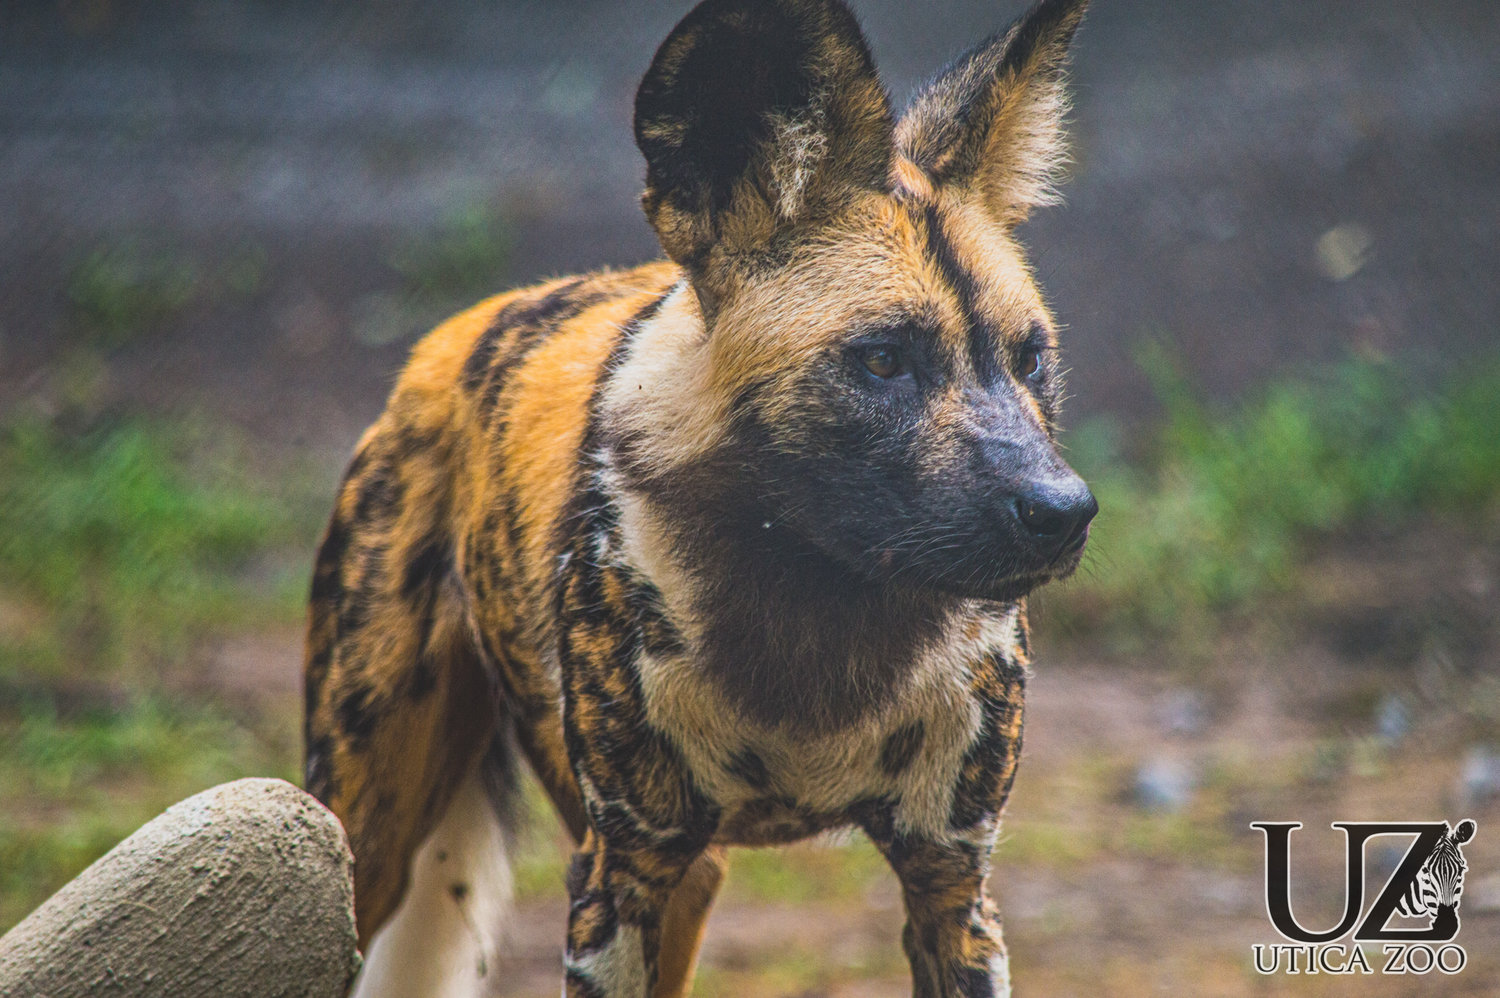 NEW AT ZOO — An African painted dog is shown in this Utica Zoo photo released on Friday. A trio of three of the animals, which are endangered with fewer than 1,500 mature adults left in the wild, have joined the pack of animals on exhibit at the Utica Zoo, 1 Utica Zoo Way.